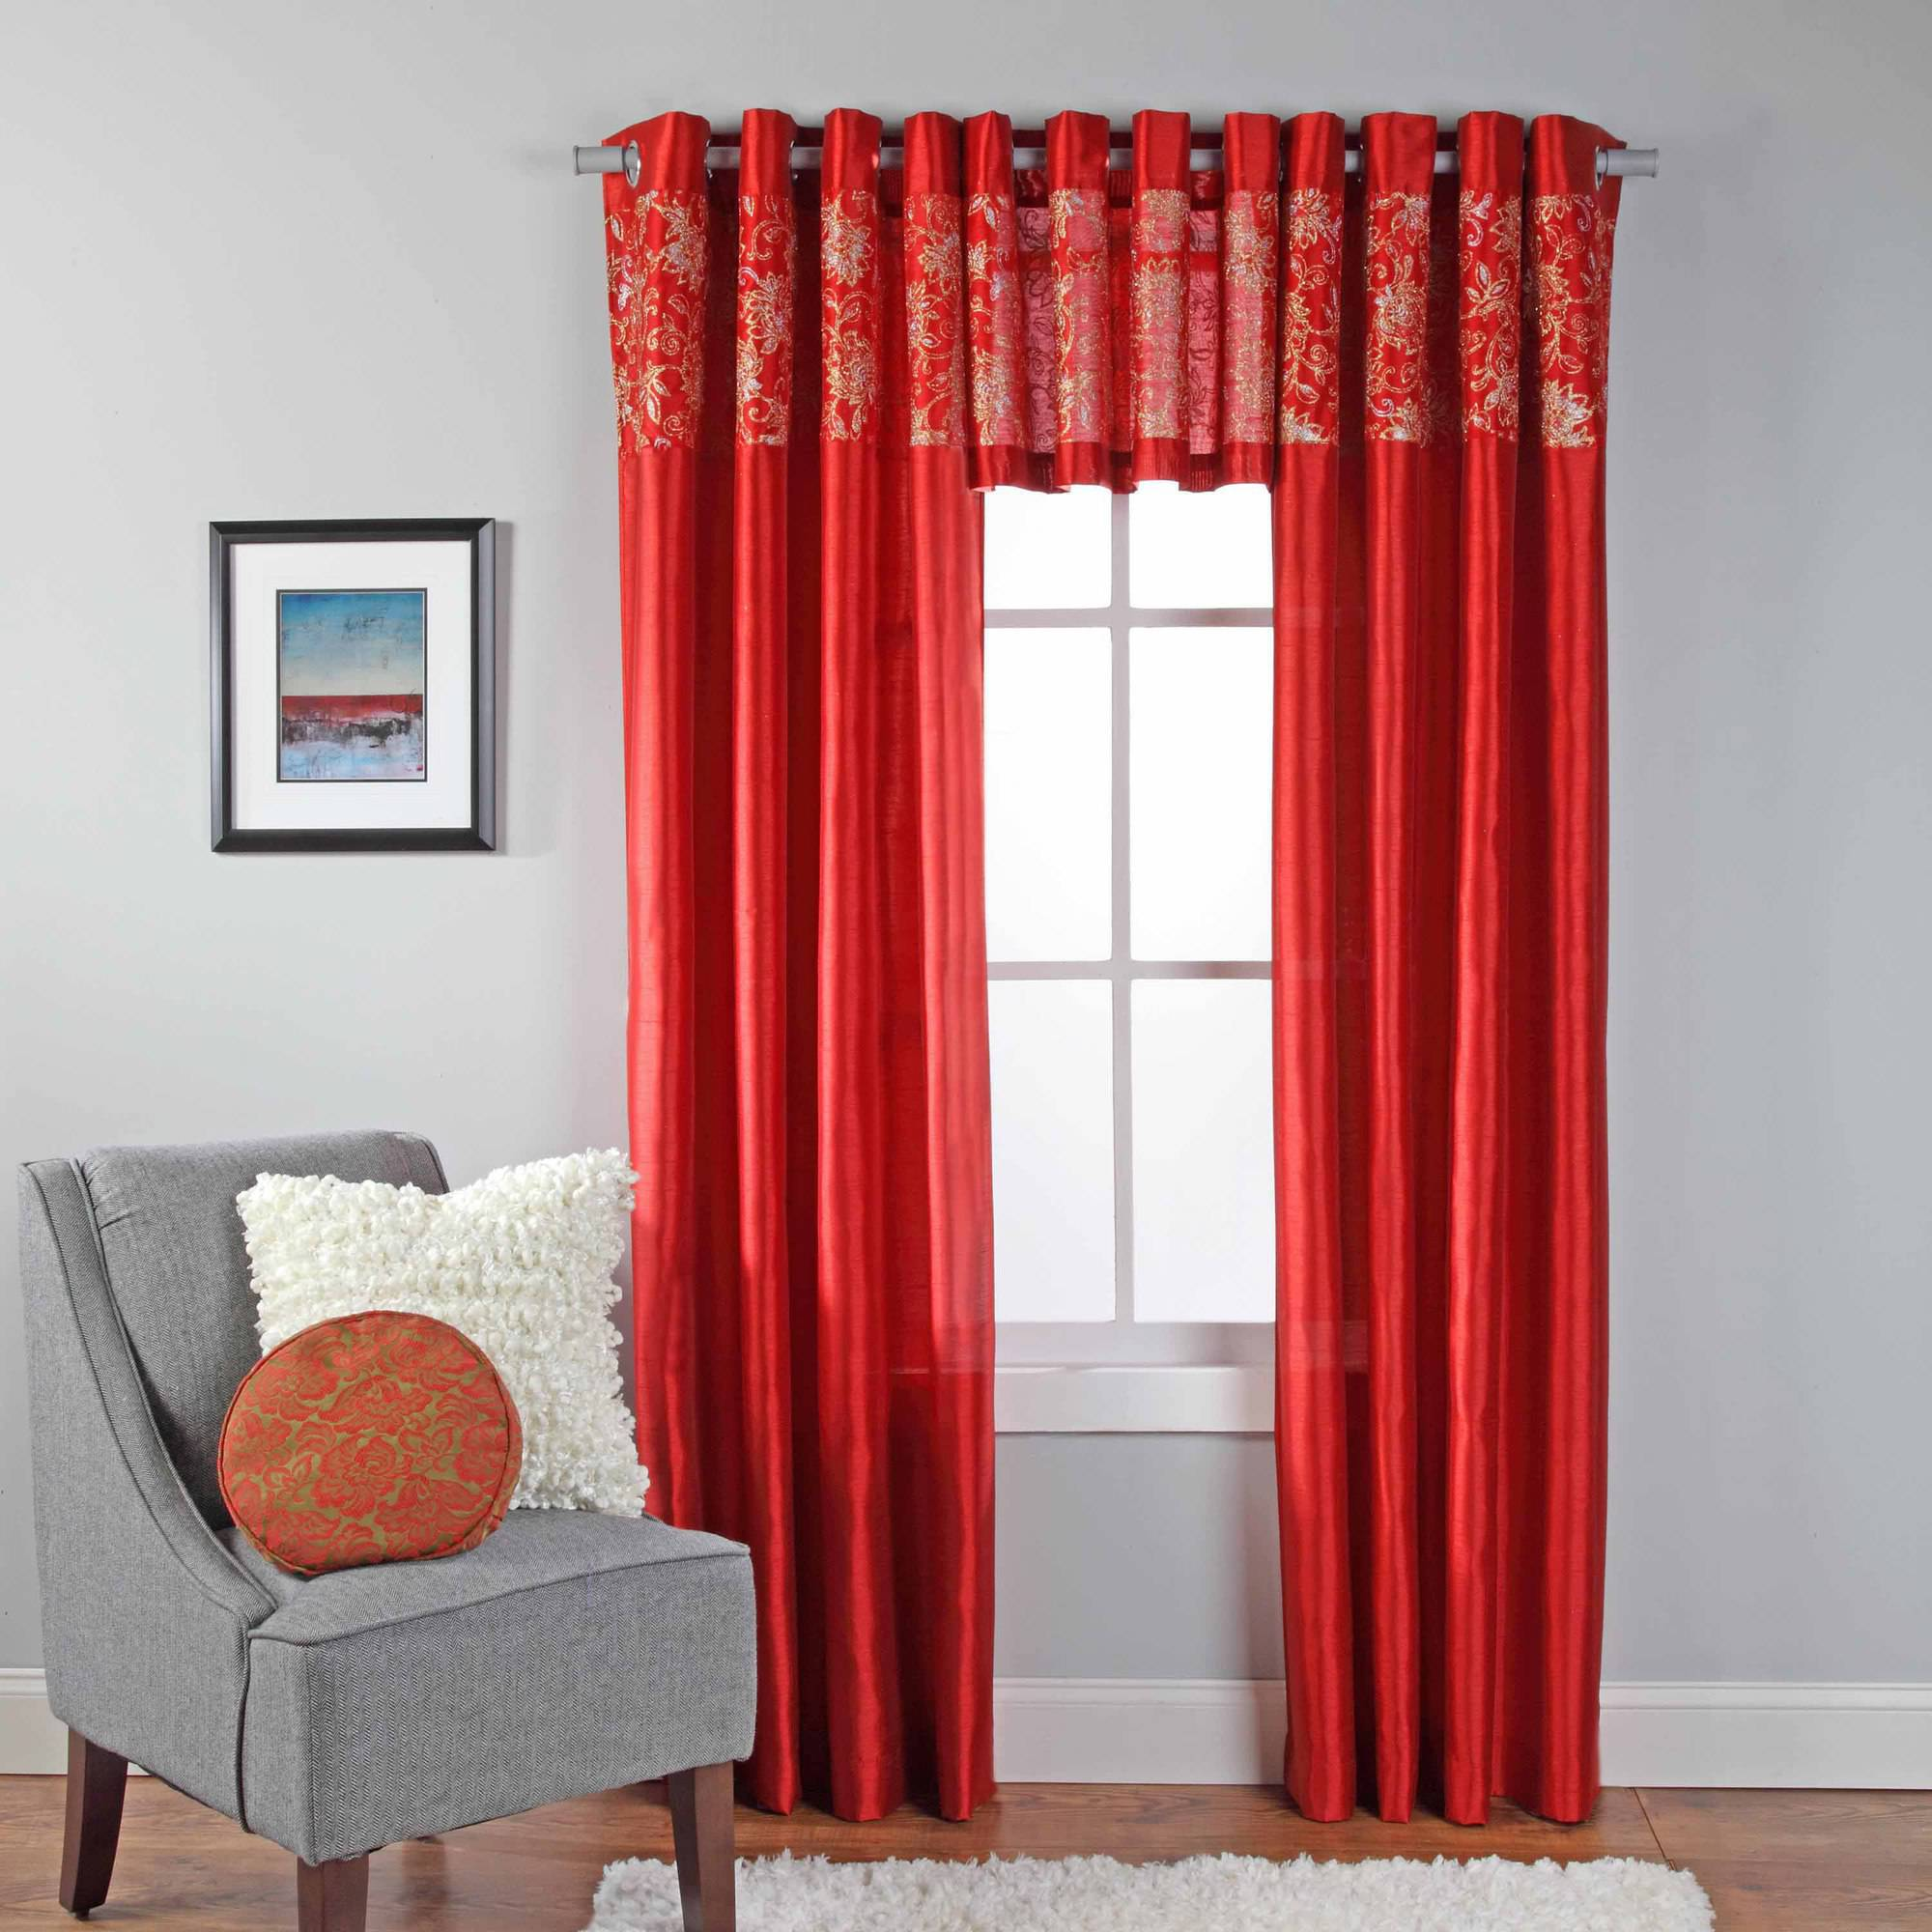 cheap popular design blackout curtains stylish grommet rod window decor treatments ideas with panel valance pocket tips most